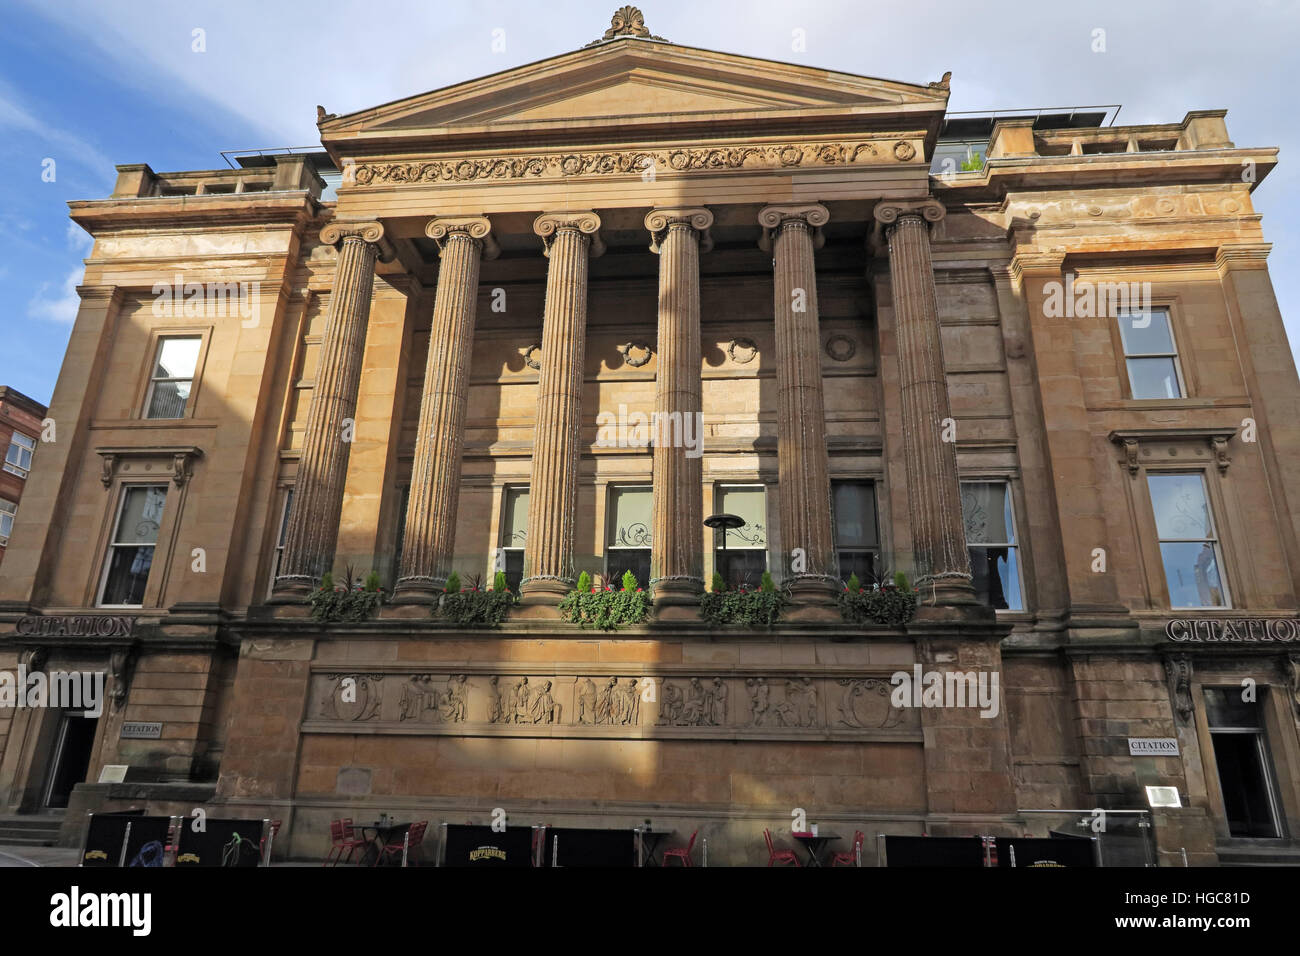 Sheriff Court building, now Citation bar, Glasgow - Stock Image